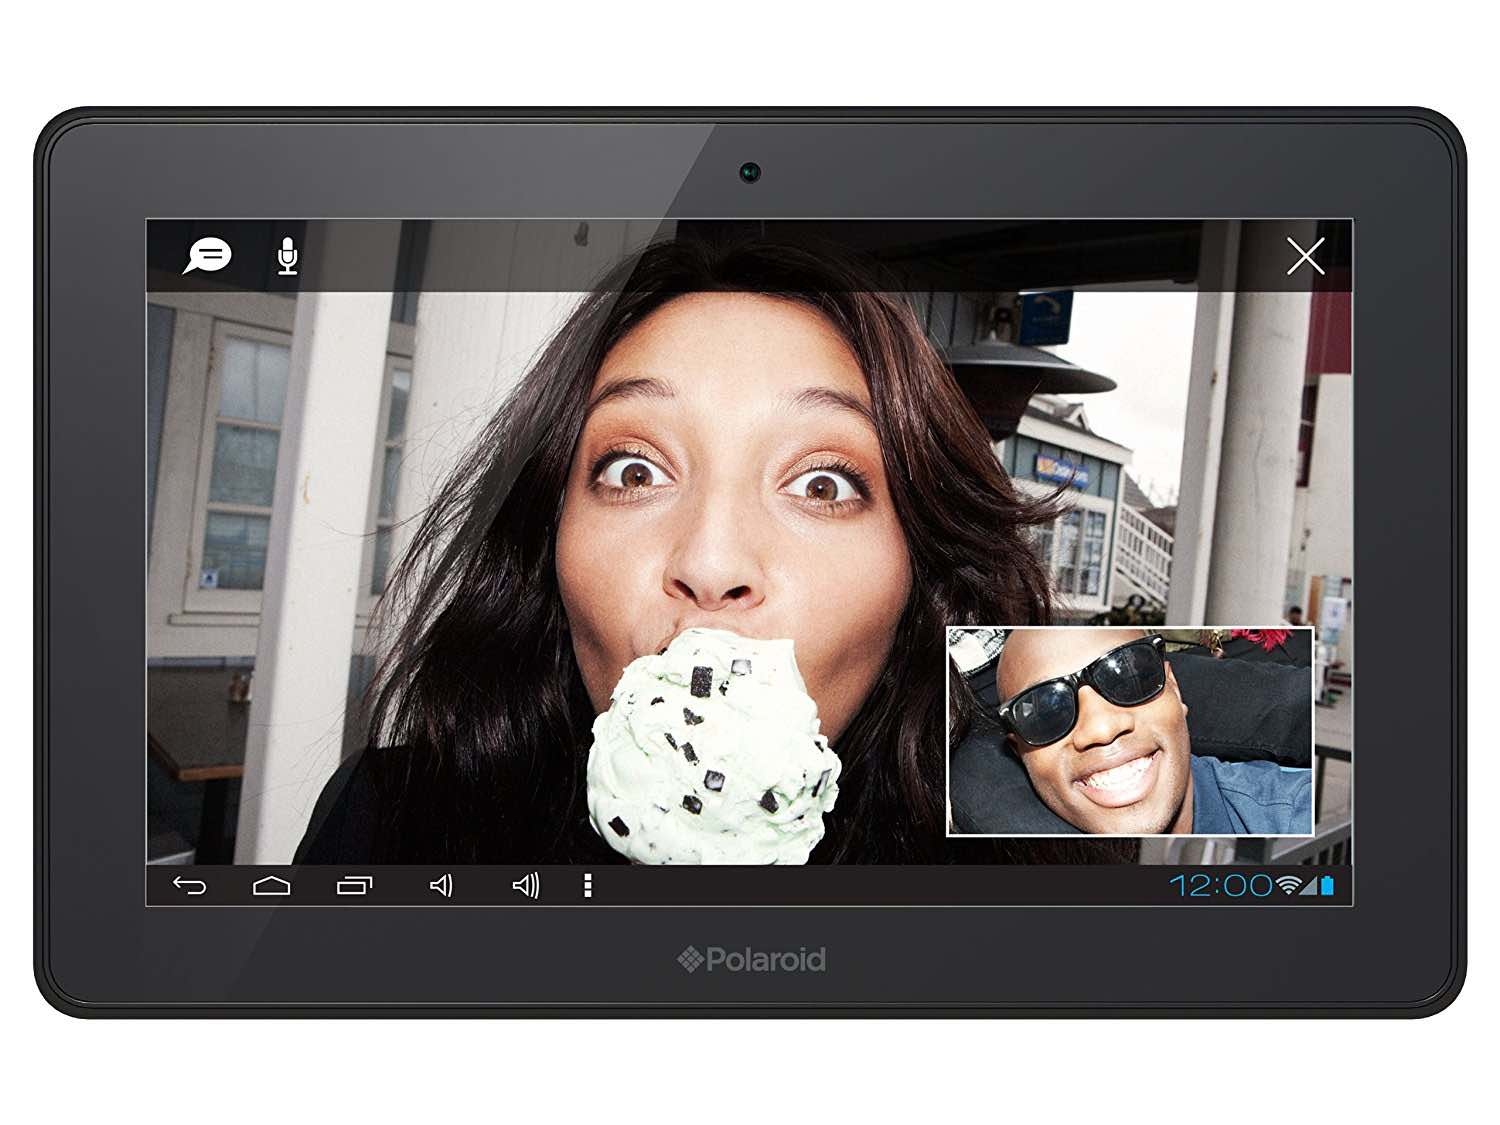 polaroid-tablet-reviews